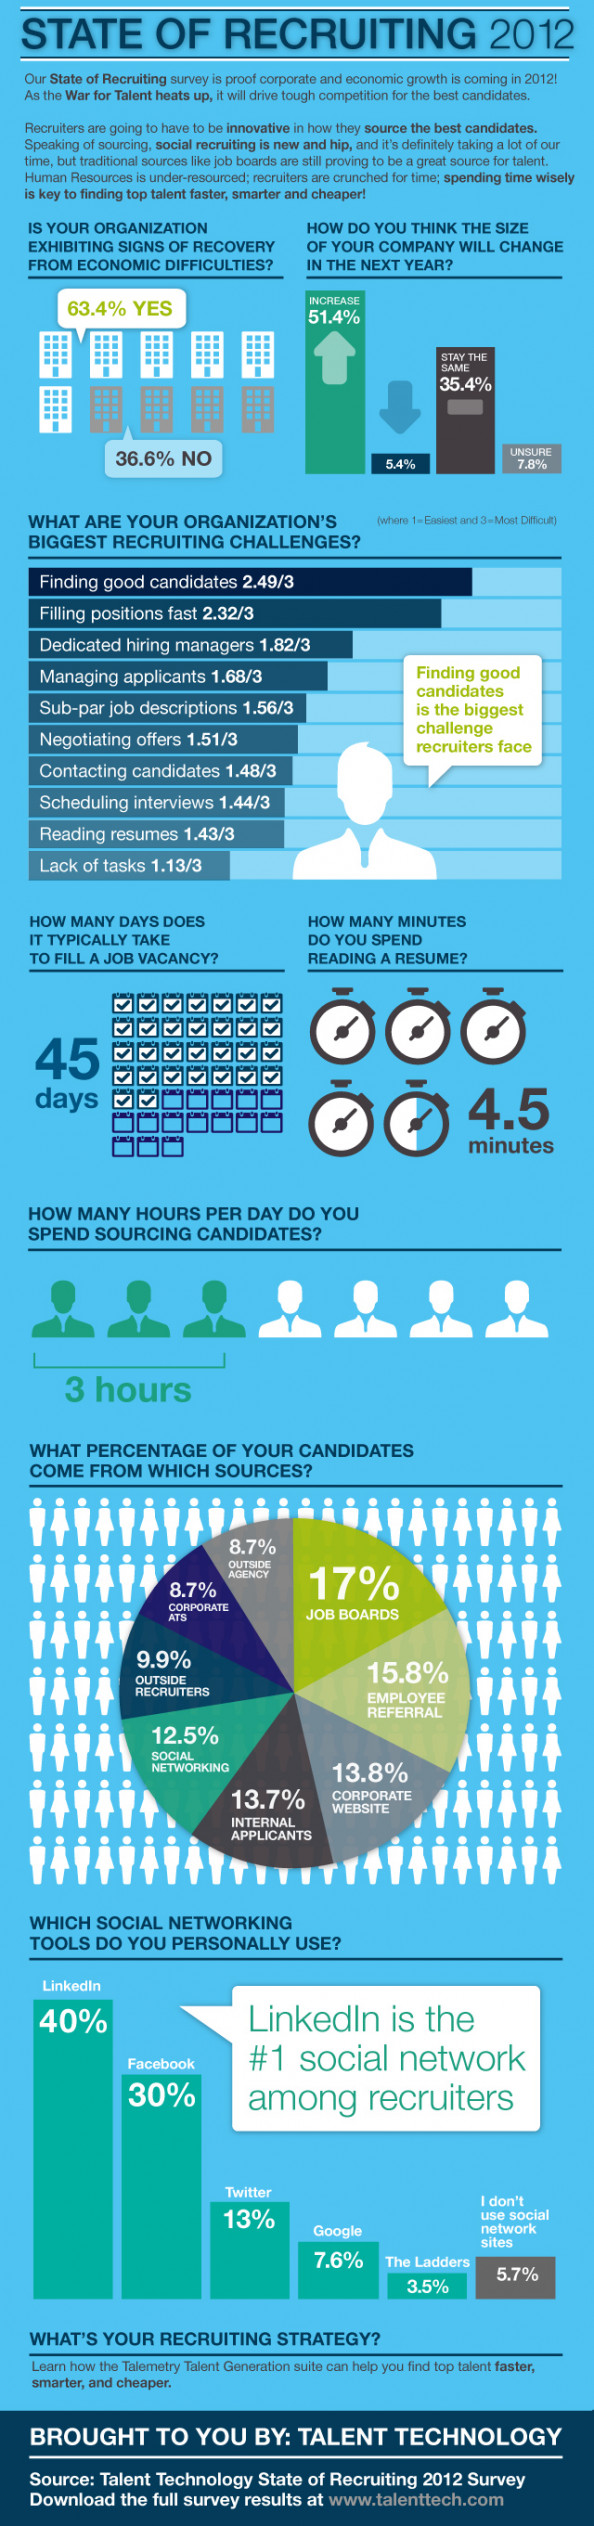 State of Recruiting 2012 Infographic